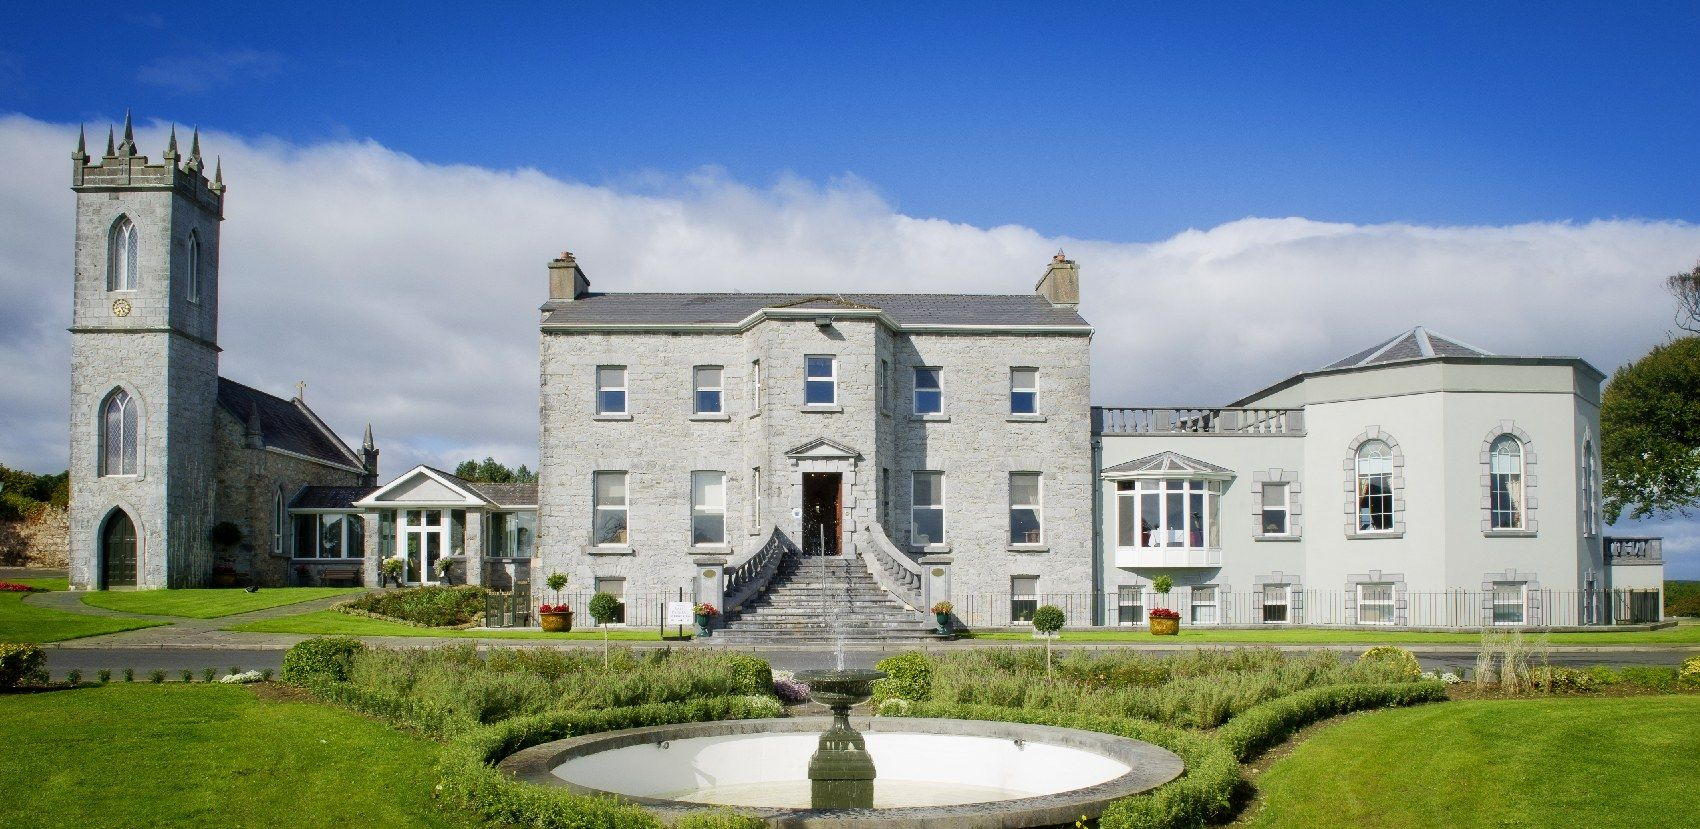 Glenlo Abbey Hotel Offers 5 Star Luxury Accommodation In Galway On The Edge Of Connemara Just From City Book Your Break